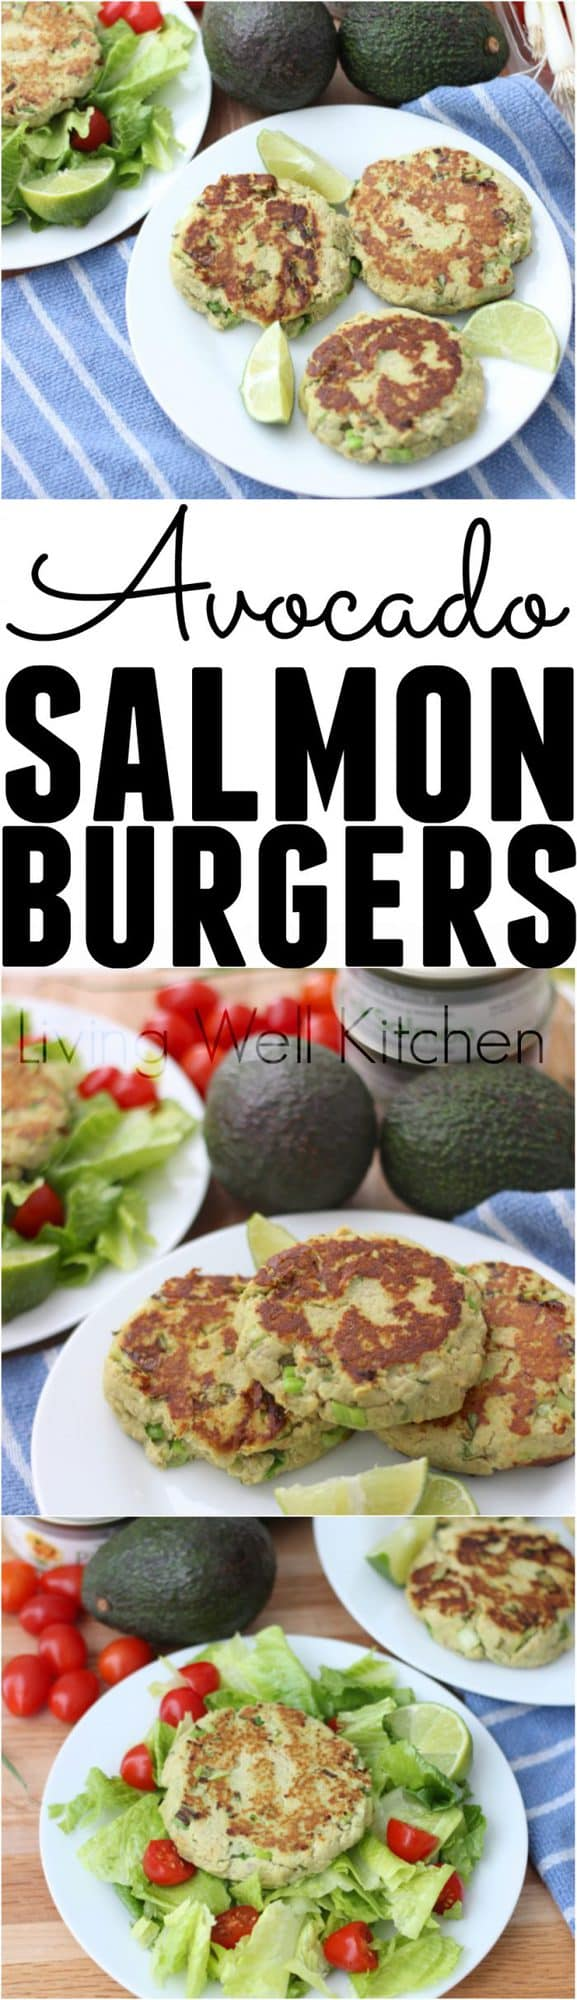 Enjoy these super nutritious, budget friendly Avocado Salmon Burgers for a high protein meal full of heart-healthy fat. Gluten free and dairy free recipe that can be made ahead